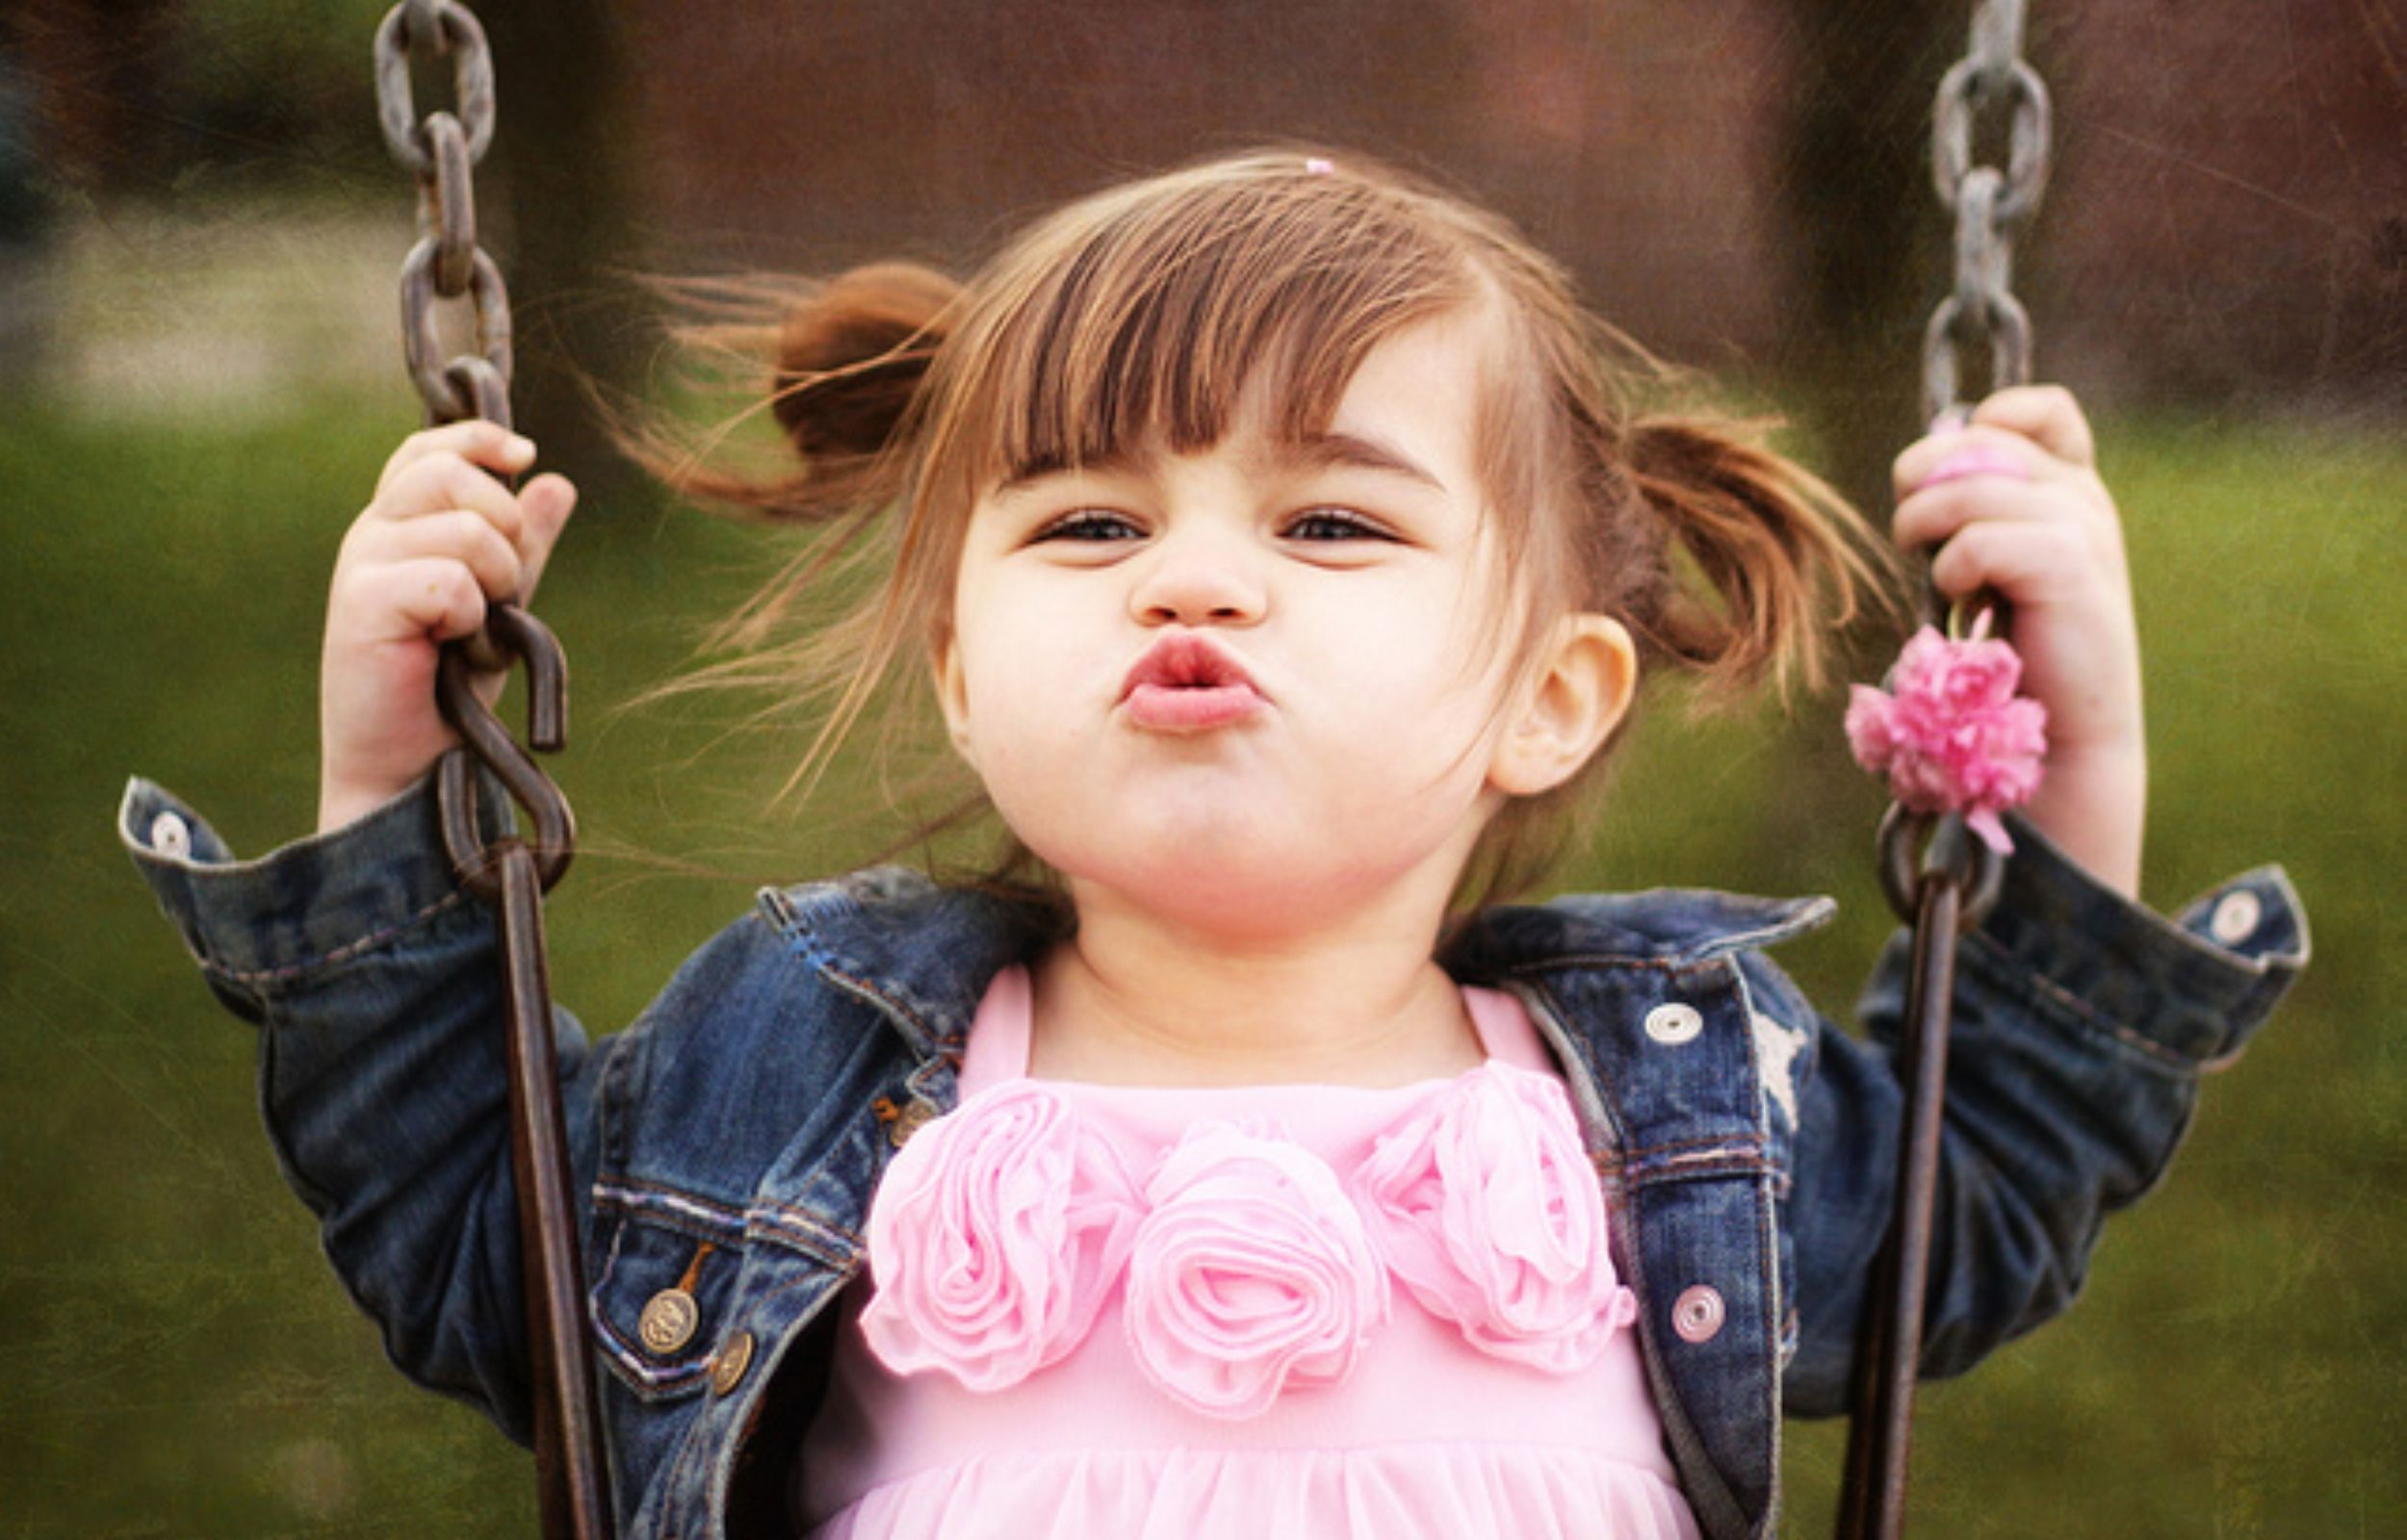 1000 images about babies on pinterest cute baby girl photos cute baby girl and cute girl wallpaper baby girl